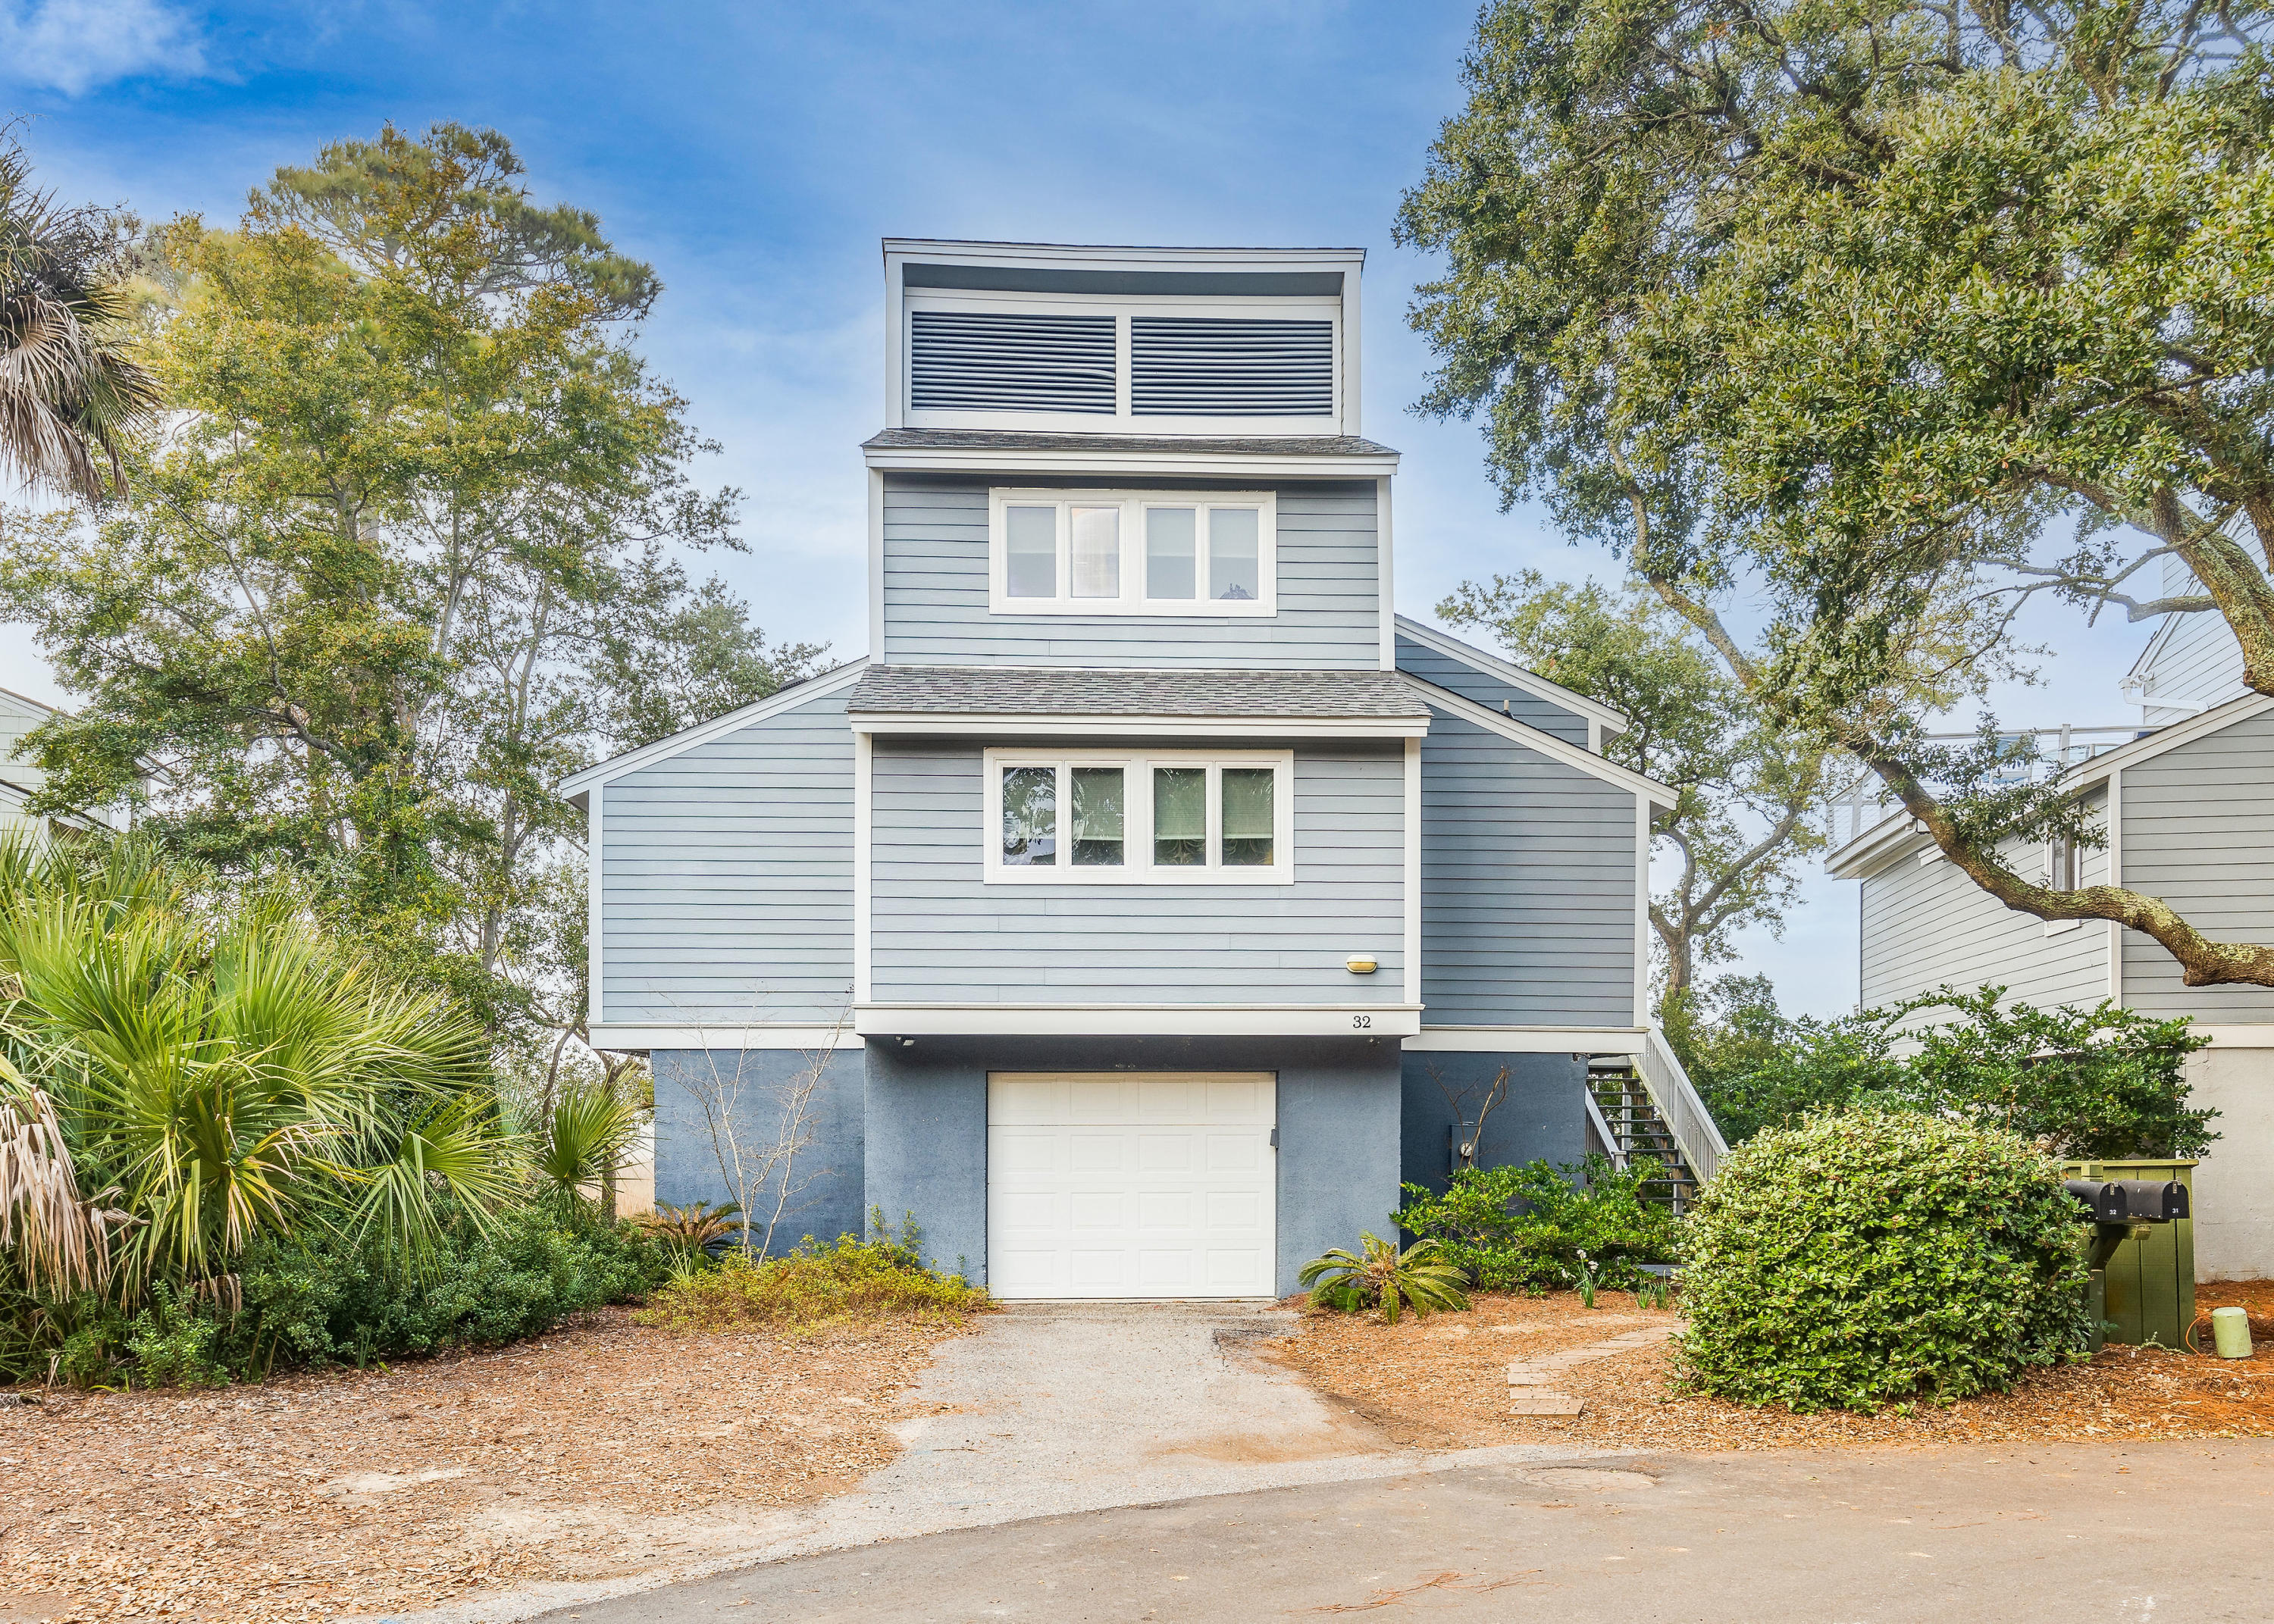 32 Marsh Island Lane Isle Of Palms, SC 29451